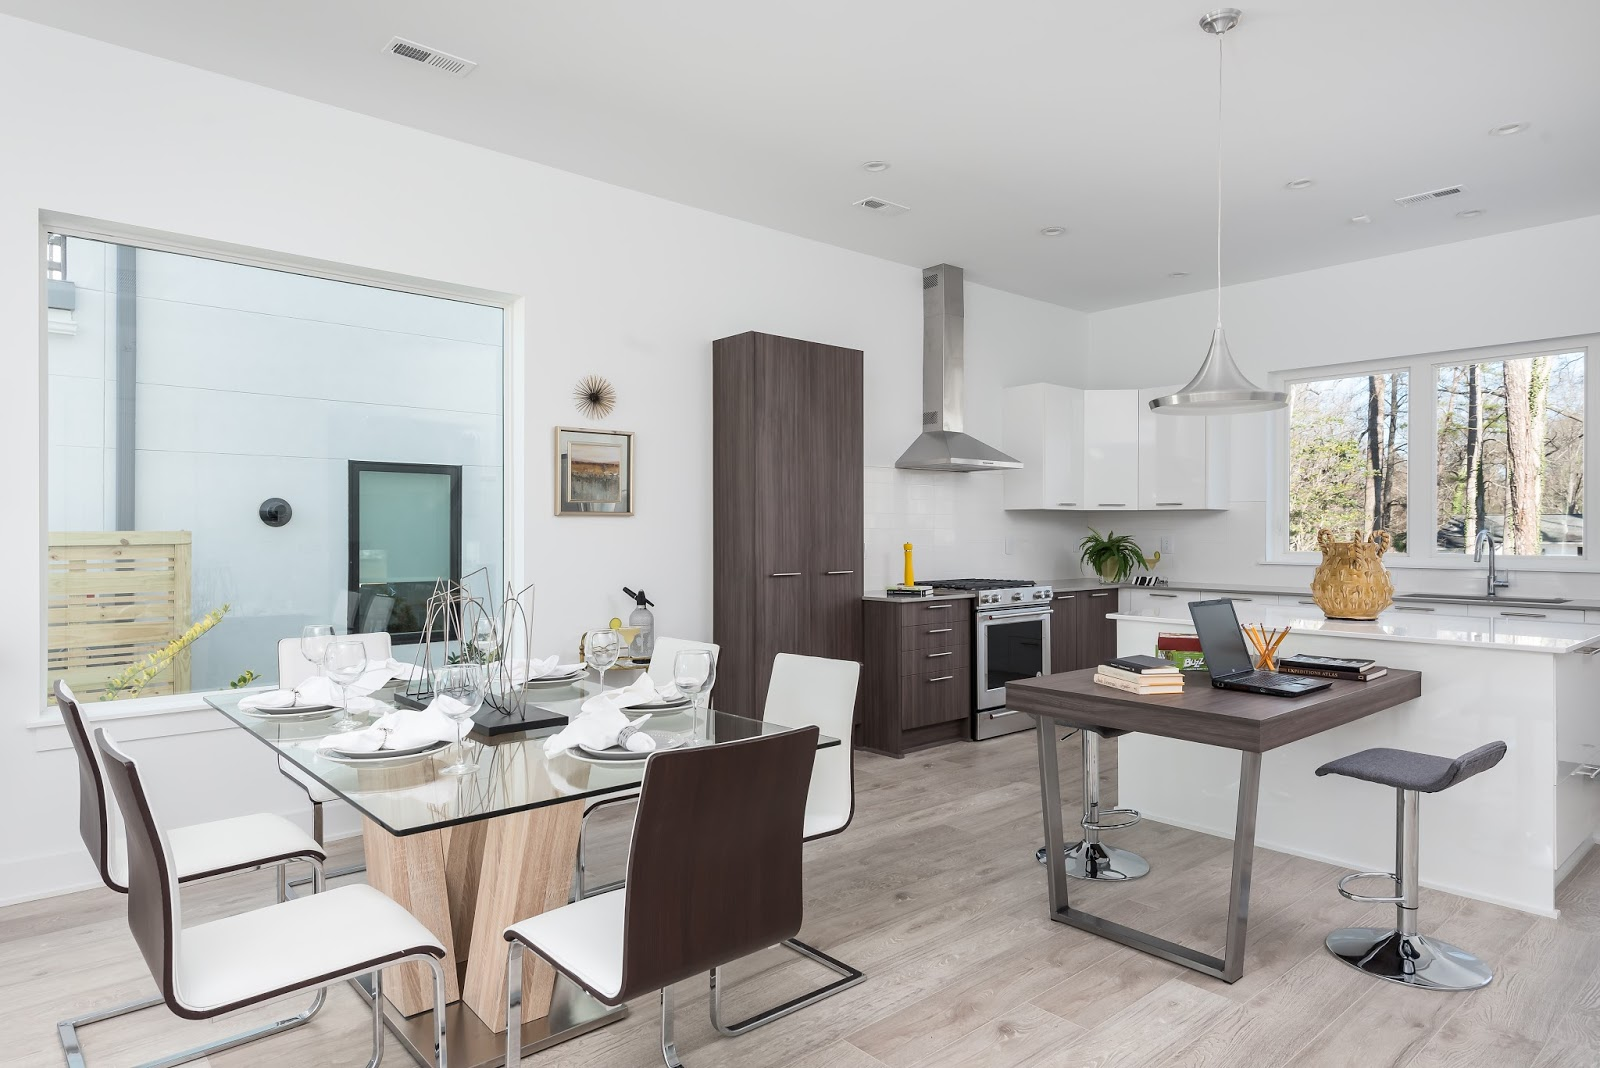 charlotte modern living tomorrow today the home of the future is chelsea building group has done an amazing job of creating a modern living environment that is both warm and inviting whether it s contemporary